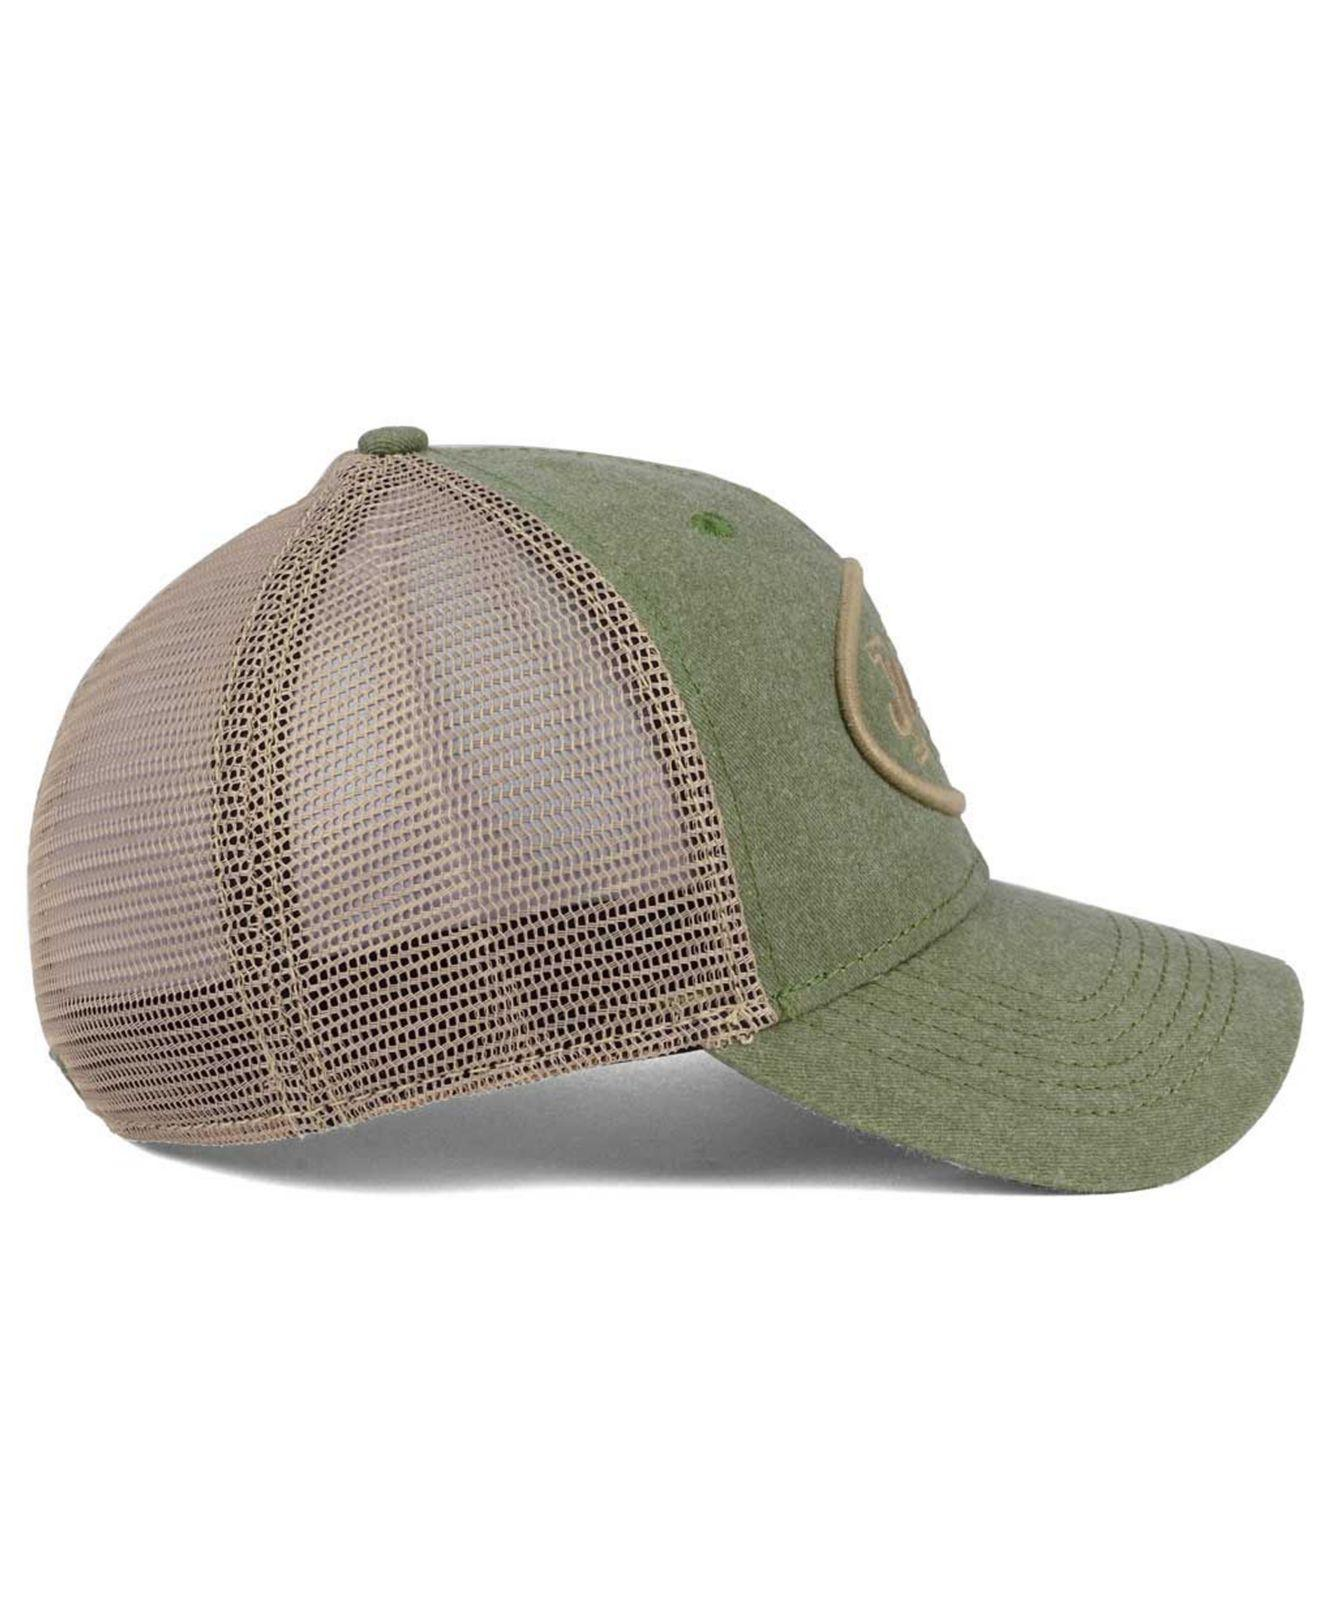 finest selection 8e800 51fa5 47 Brand New York Jets Summerland Contender Flex Cap in Green for ...